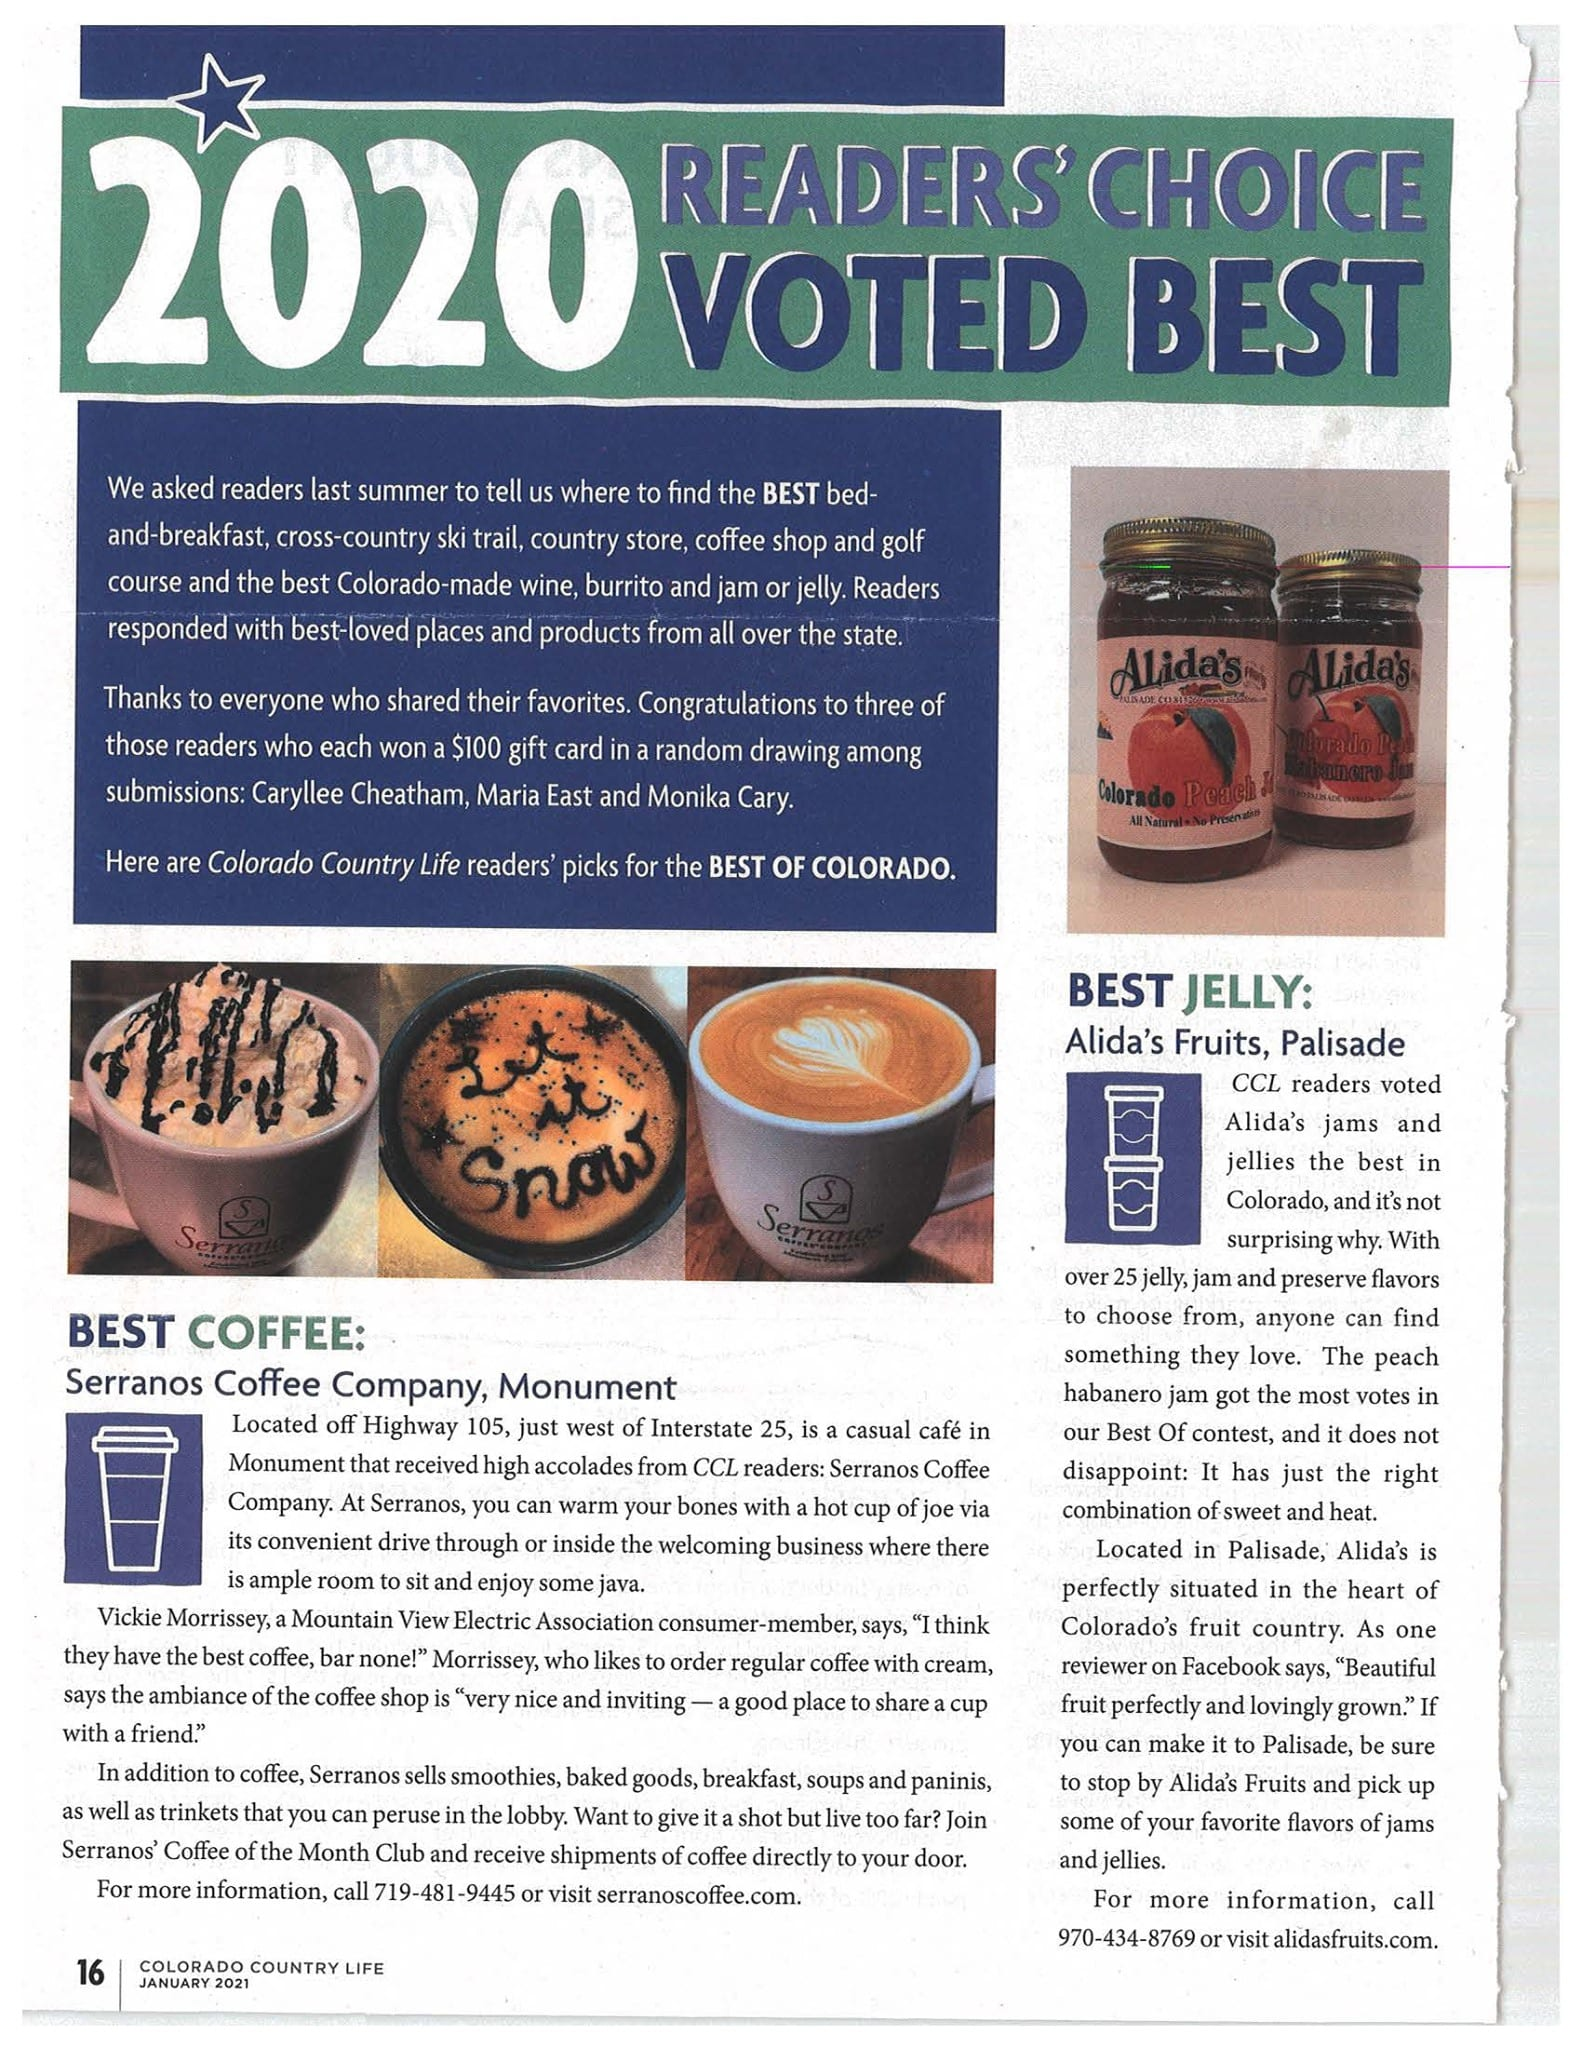 CCL readers voted Alida's jams and jellies the best in Colorado